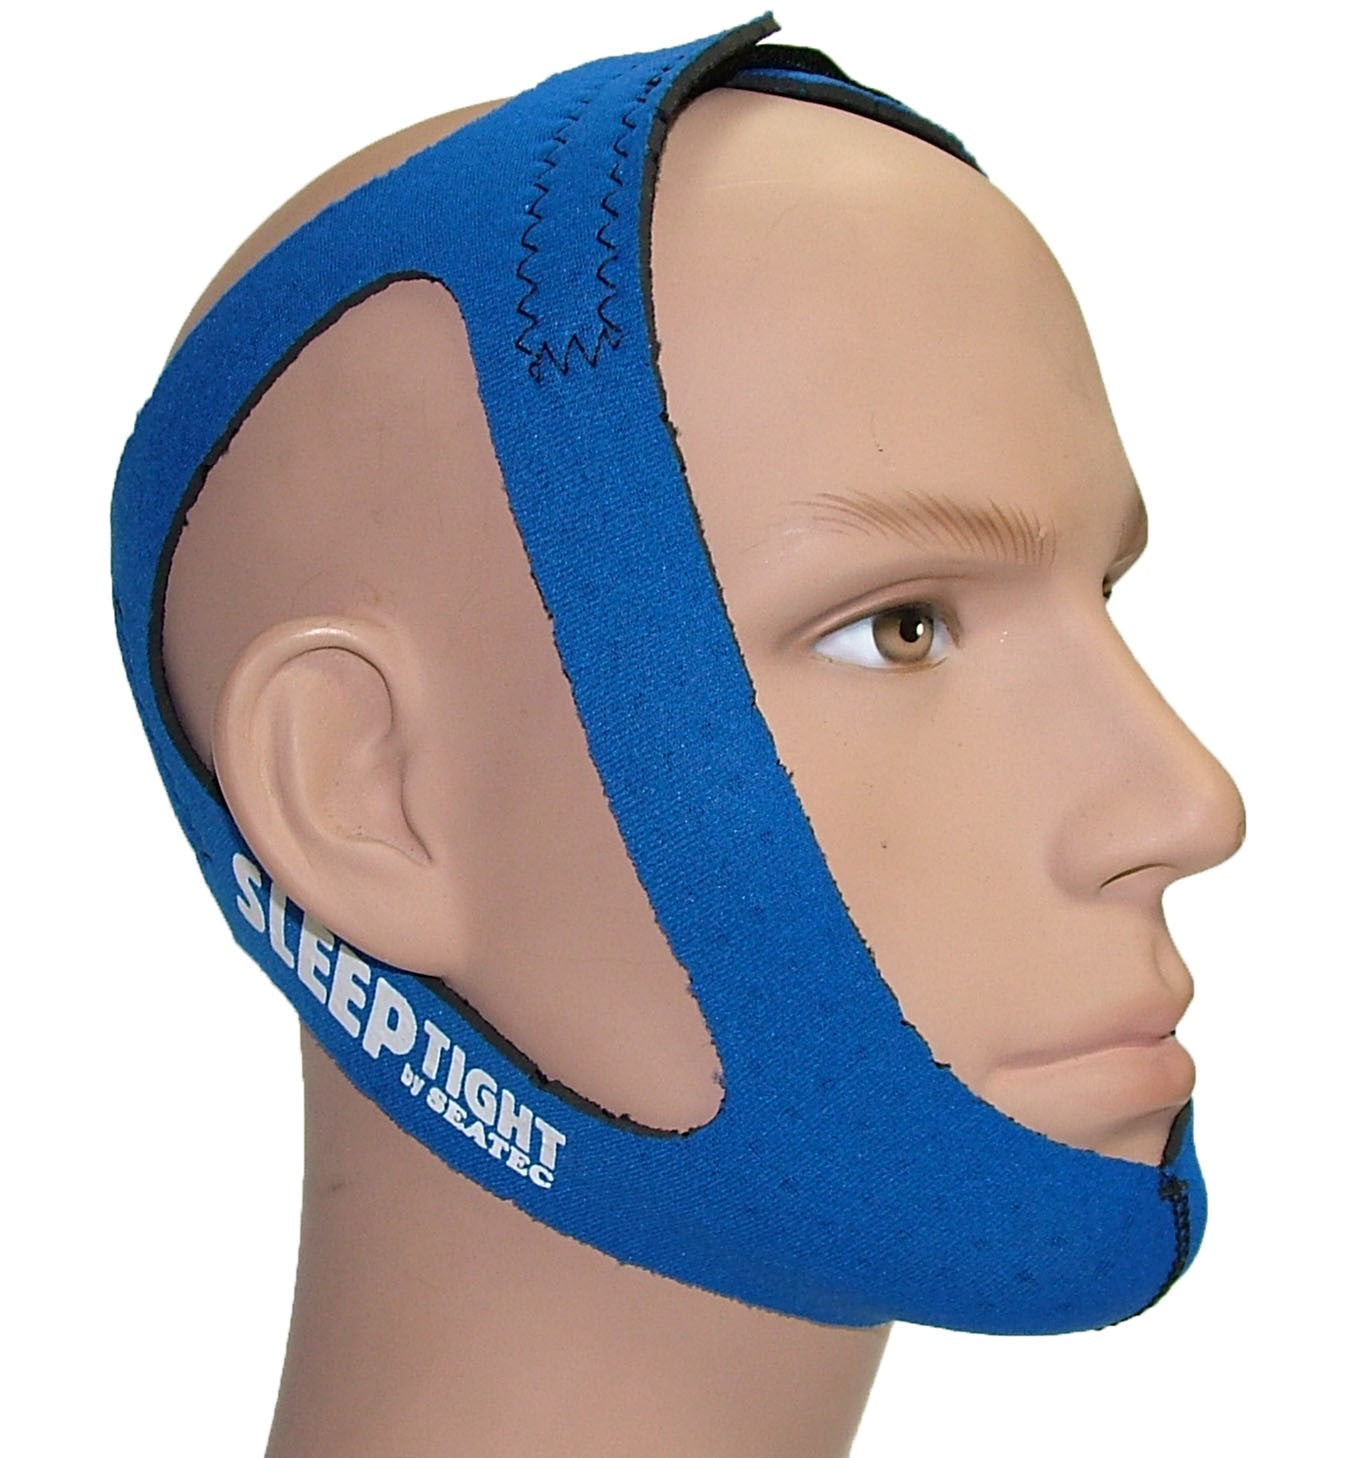 SeaTec Chin Strap by Philips from Easy CPAP